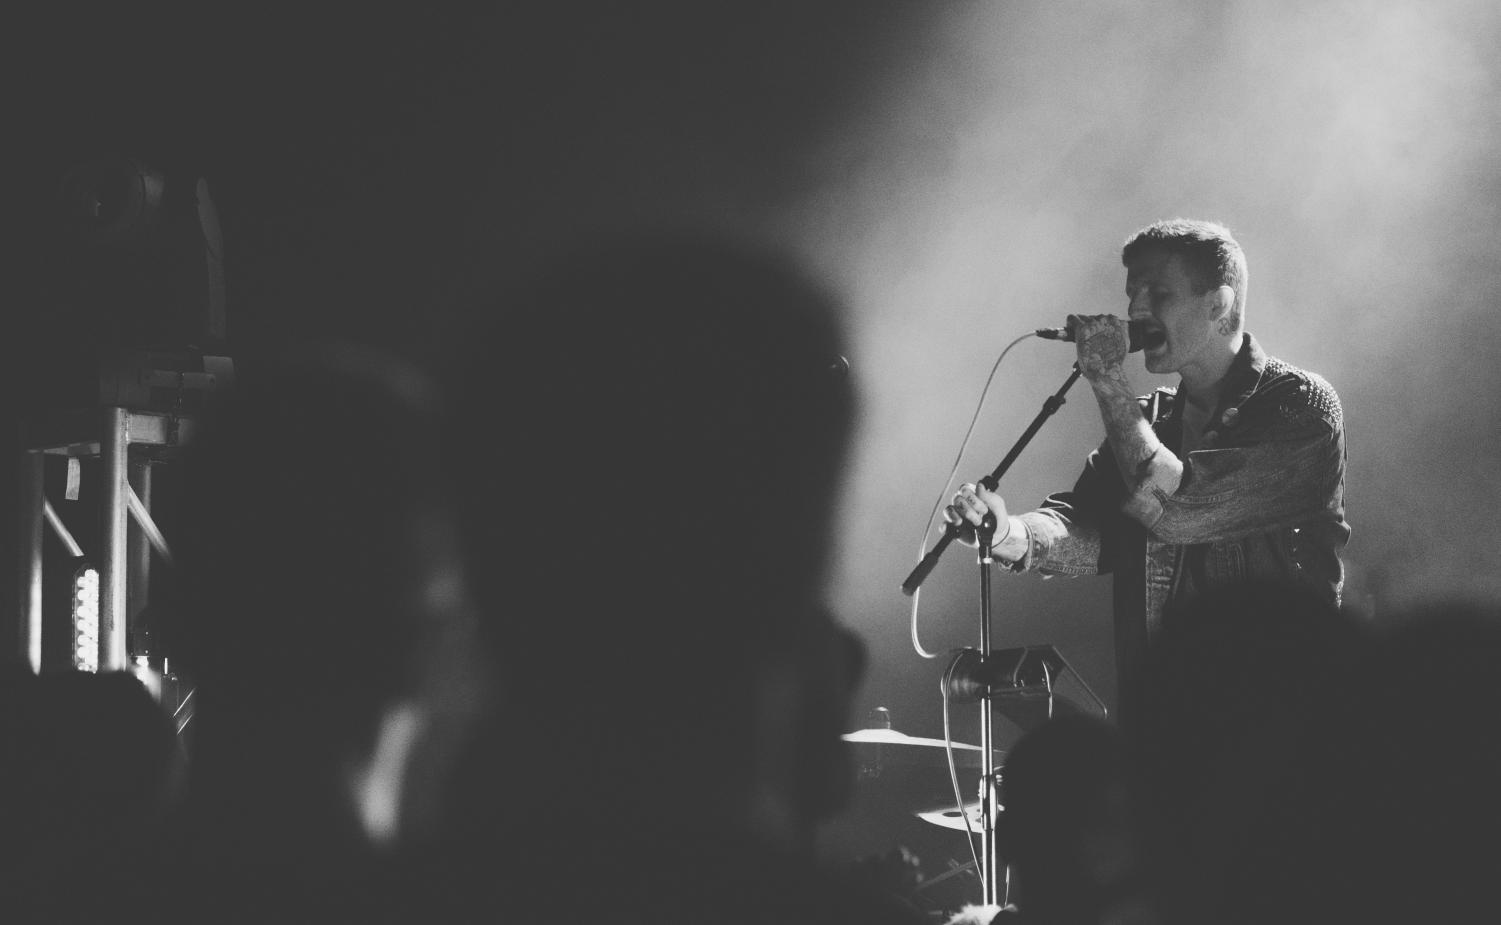 Oliver the Kid, Bryan Sammis's stage name, performs at the Constellation Room in Santa Ana